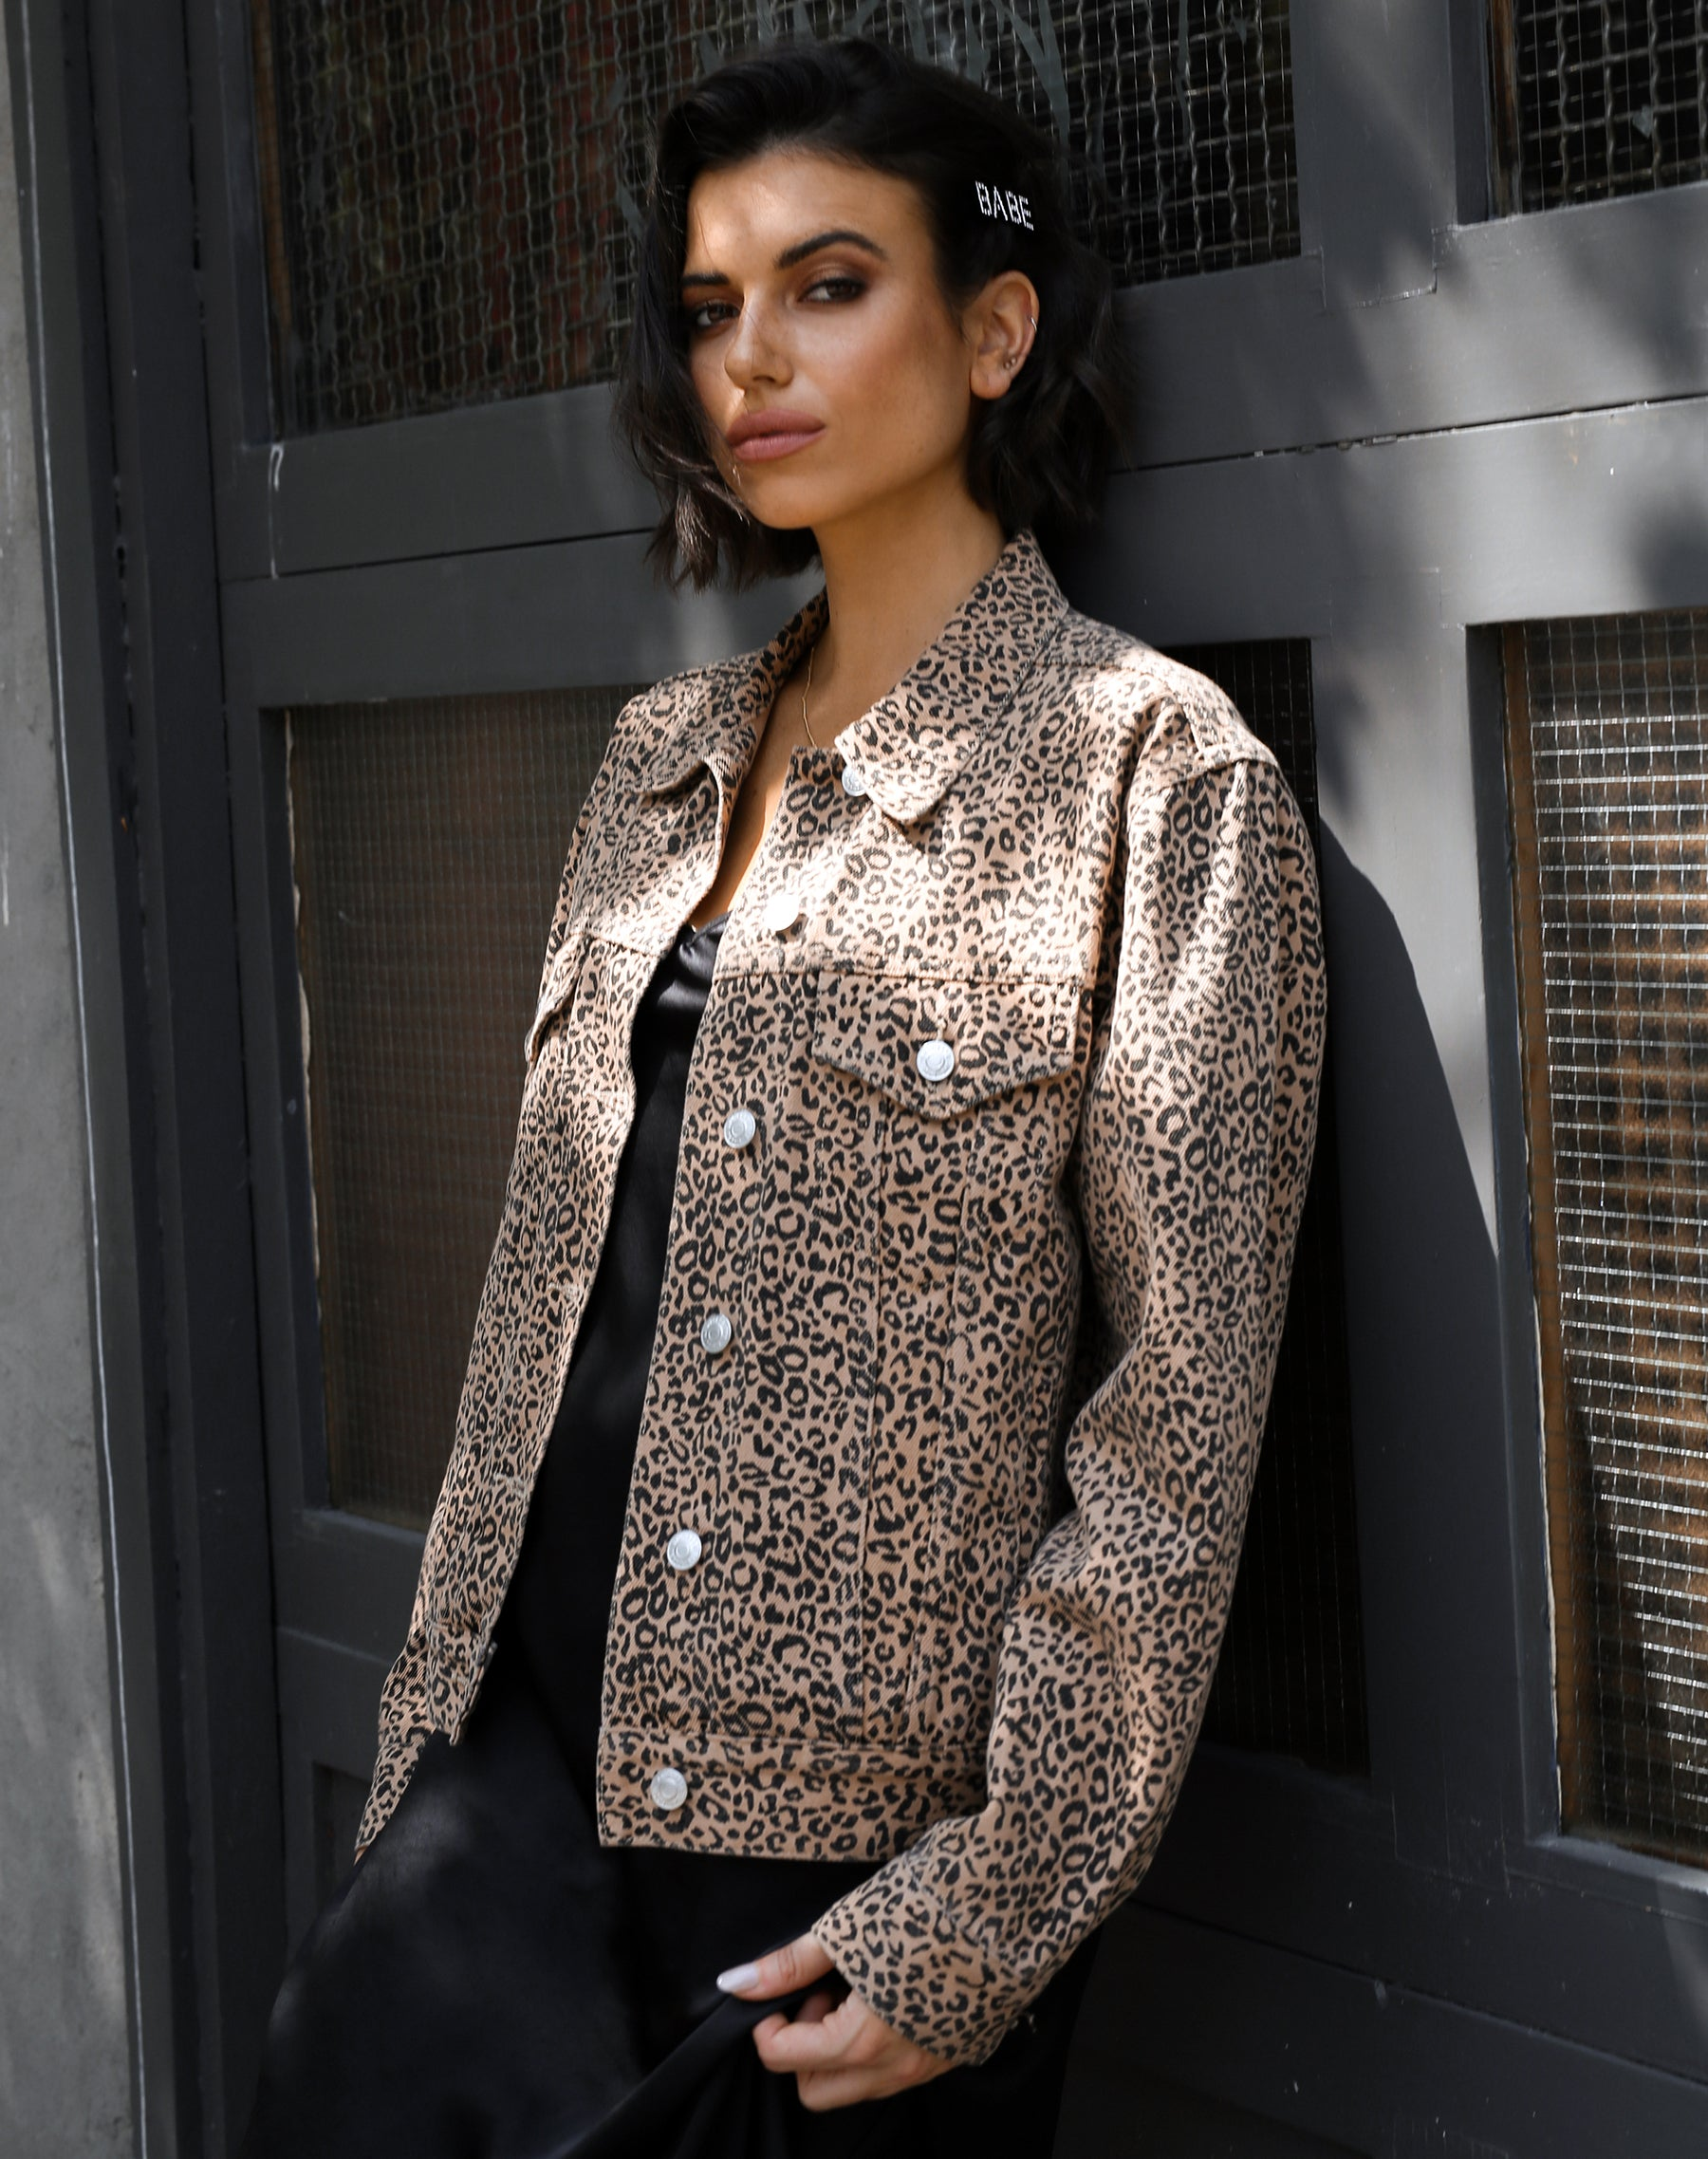 The Lindsay Denim Jacket in Leopard by Brunette the Label.